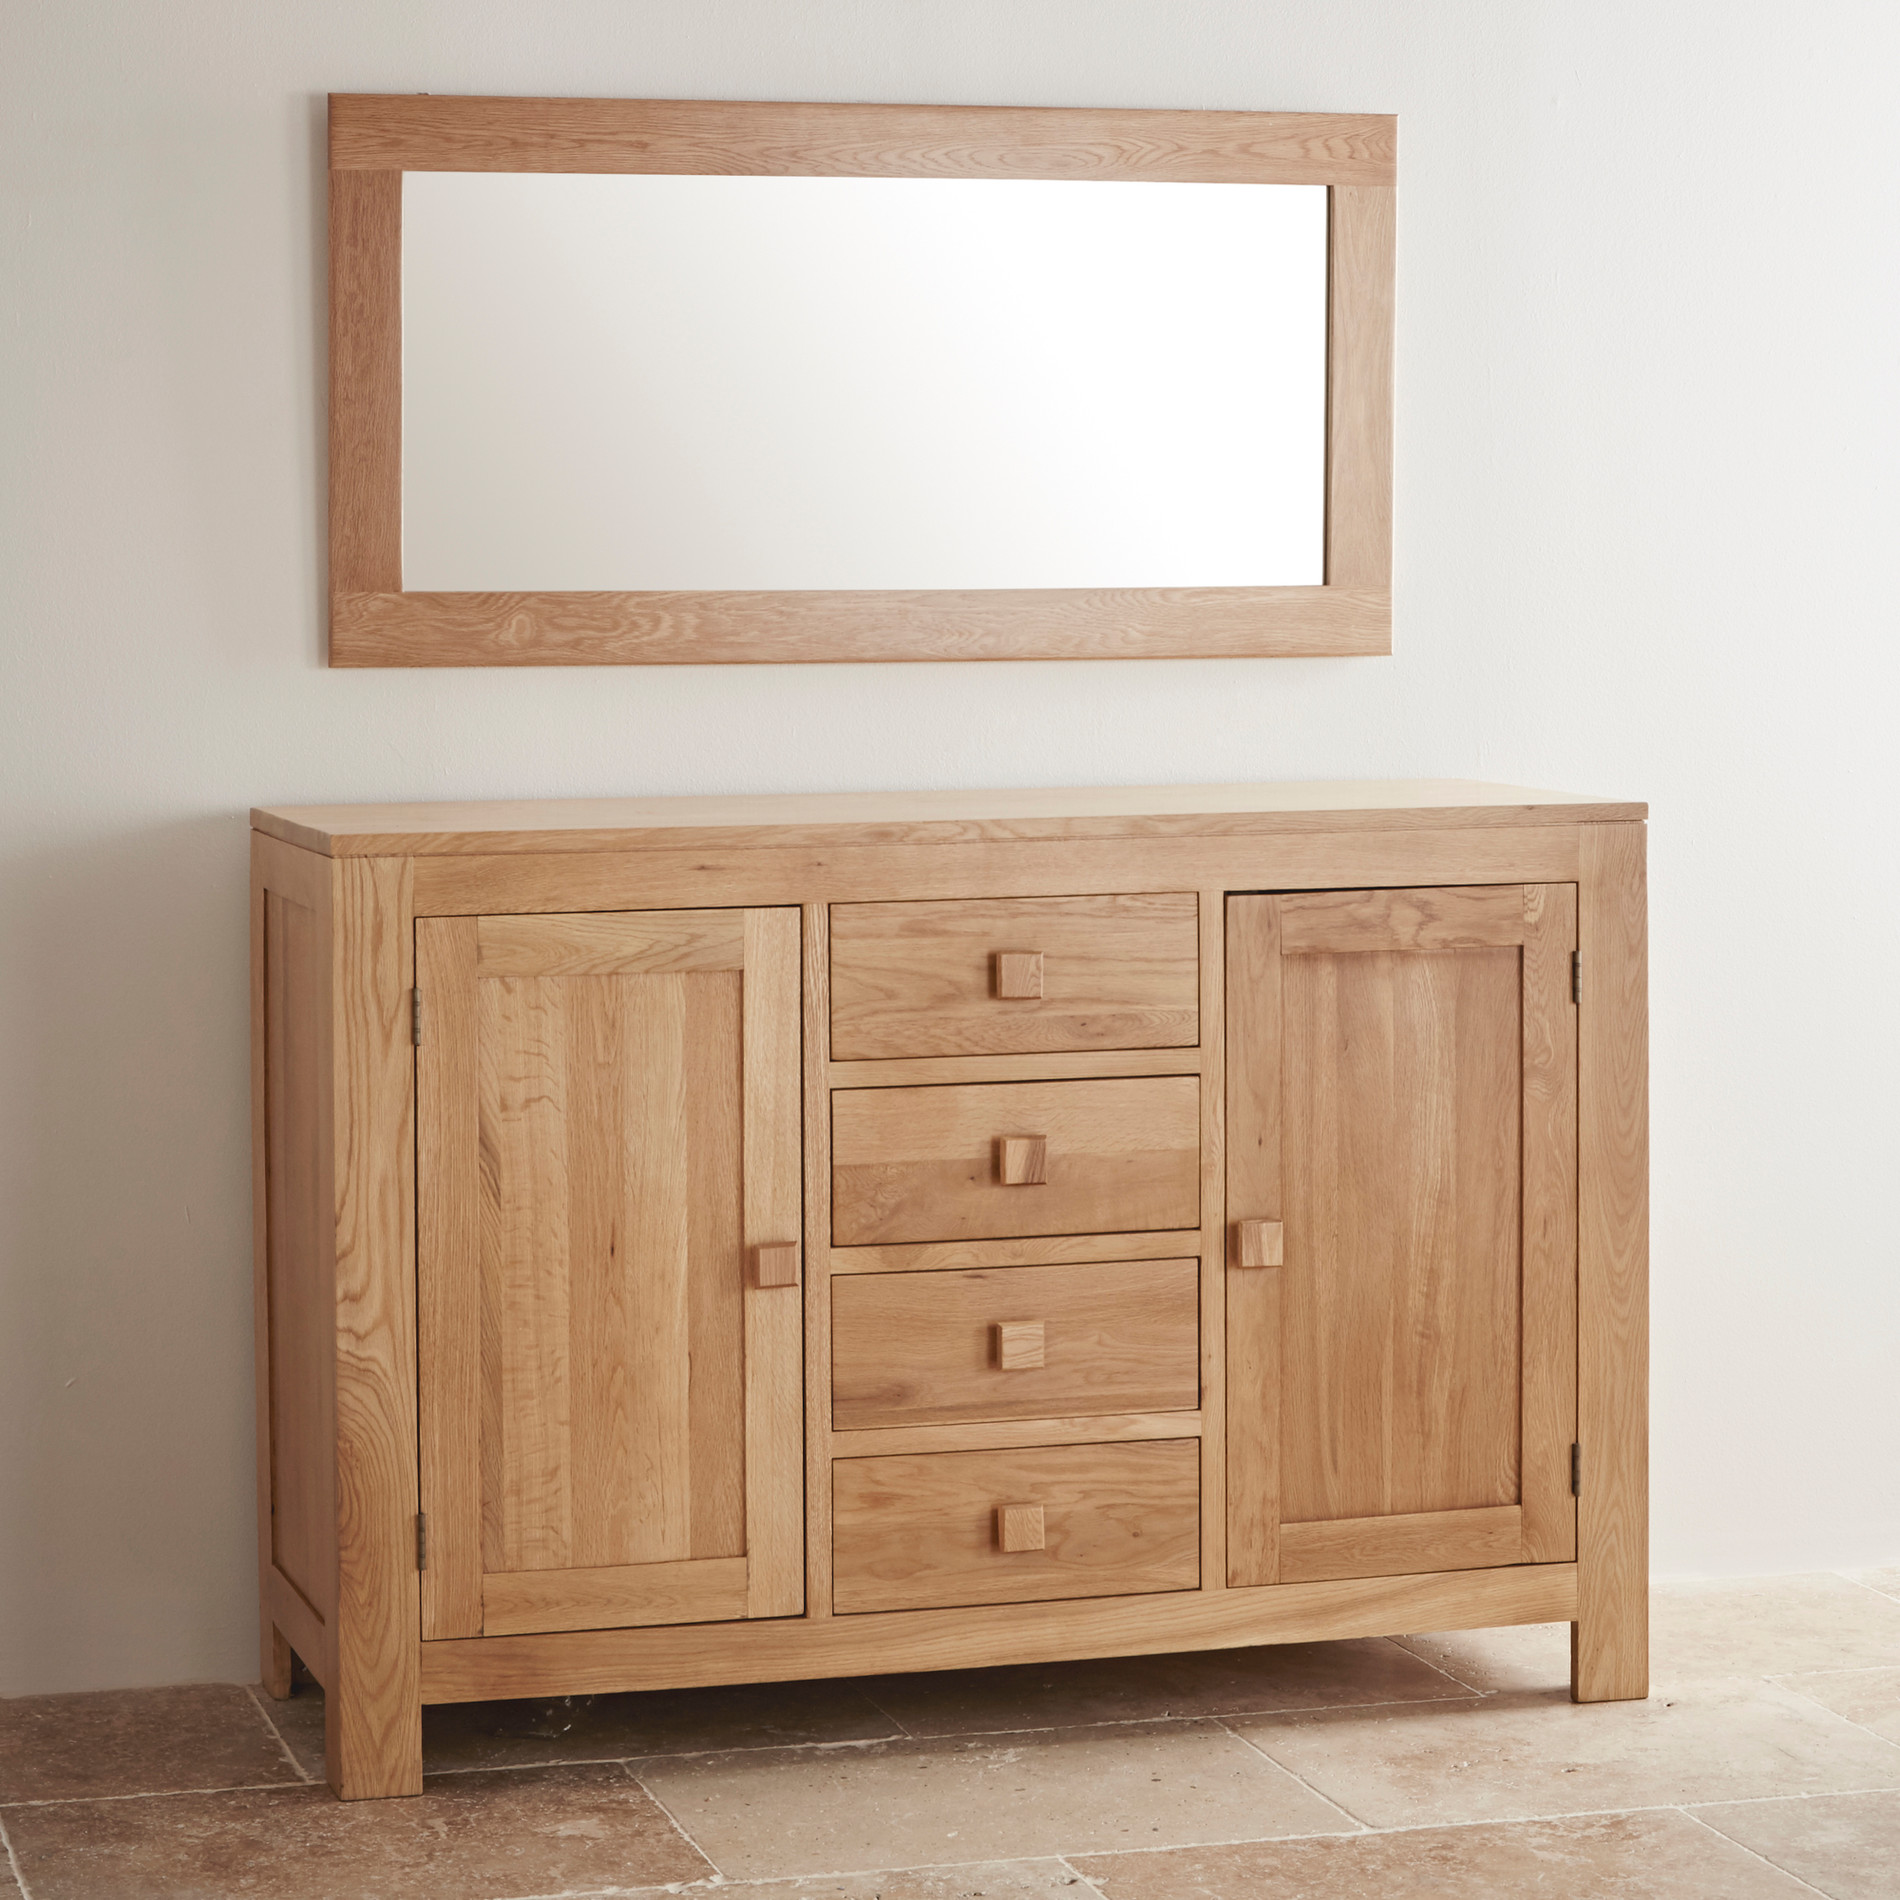 Oakdale natural solid oak wall mirror by oak furniture land express delivery oakdale natural solid oak 1200mm x 600mm wall mirror amipublicfo Choice Image